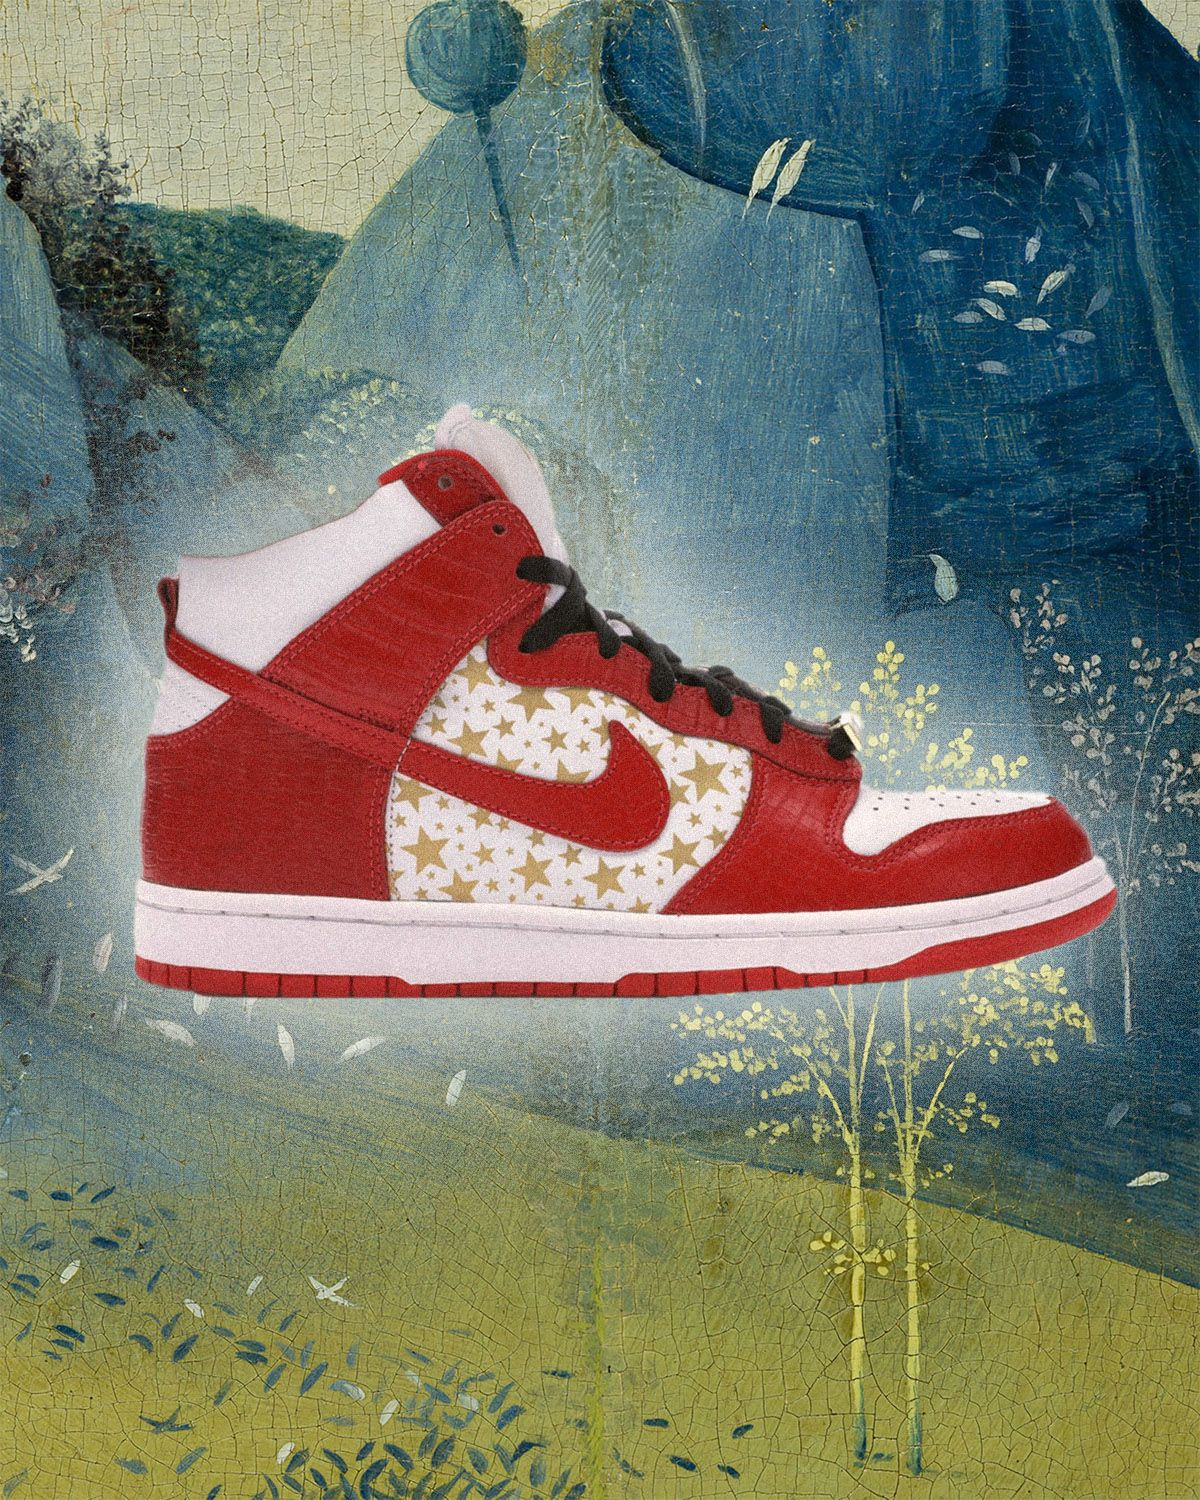 The 50 Most Influential Nike Dunks in History 172